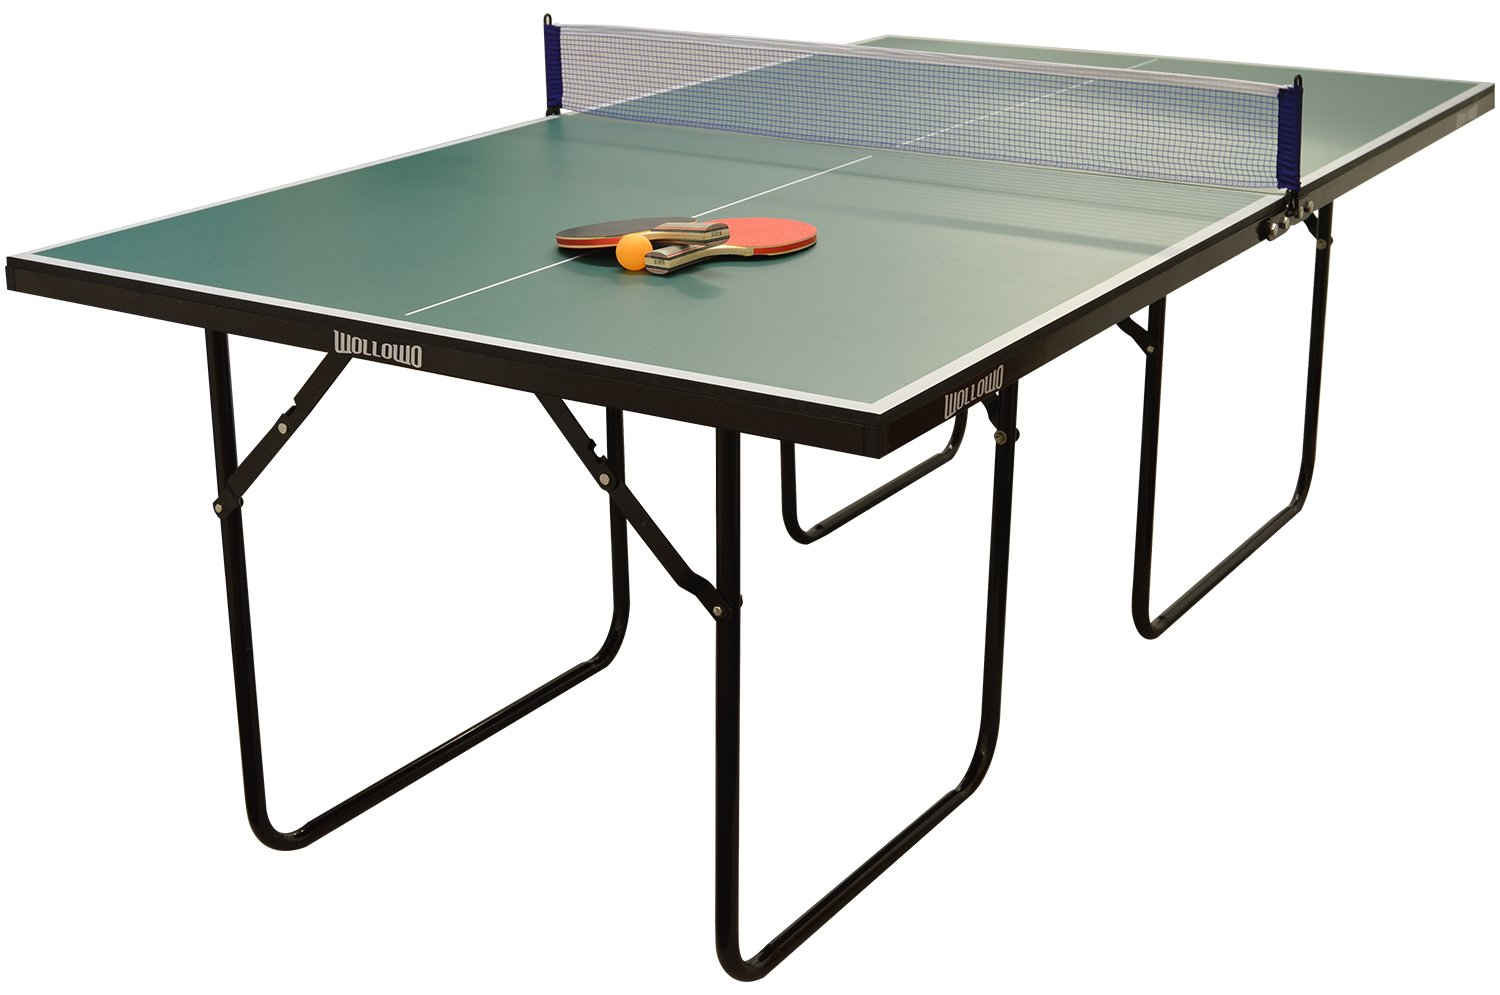 Beautiful Wollowo Green 3/4 Size Junior Table Tennis/Ping Pong Table Foldable With  Bats: Amazon.co.uk: Sports U0026 Outdoors